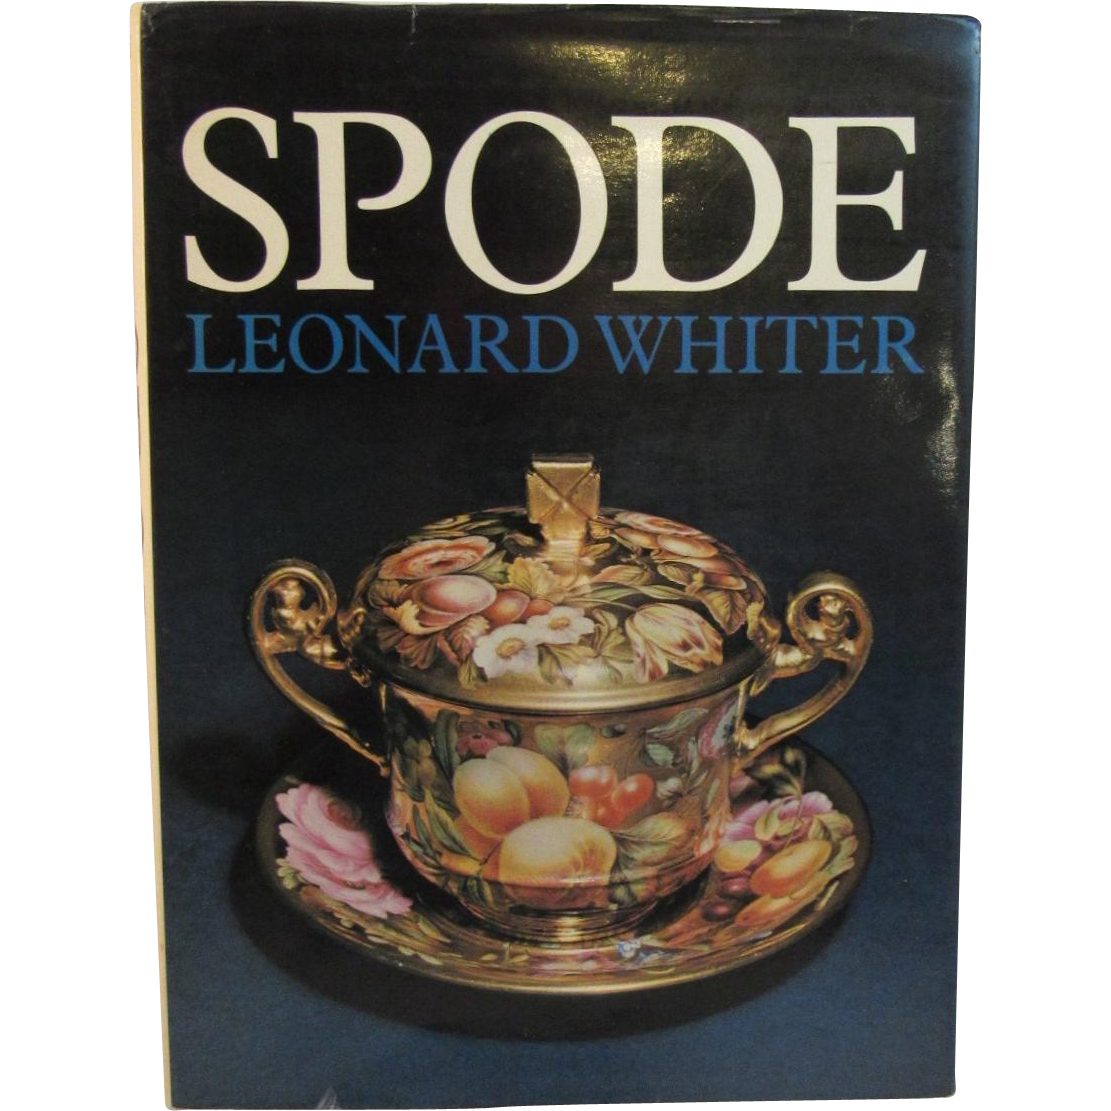 Spode Book by Leonard Whiter 1970